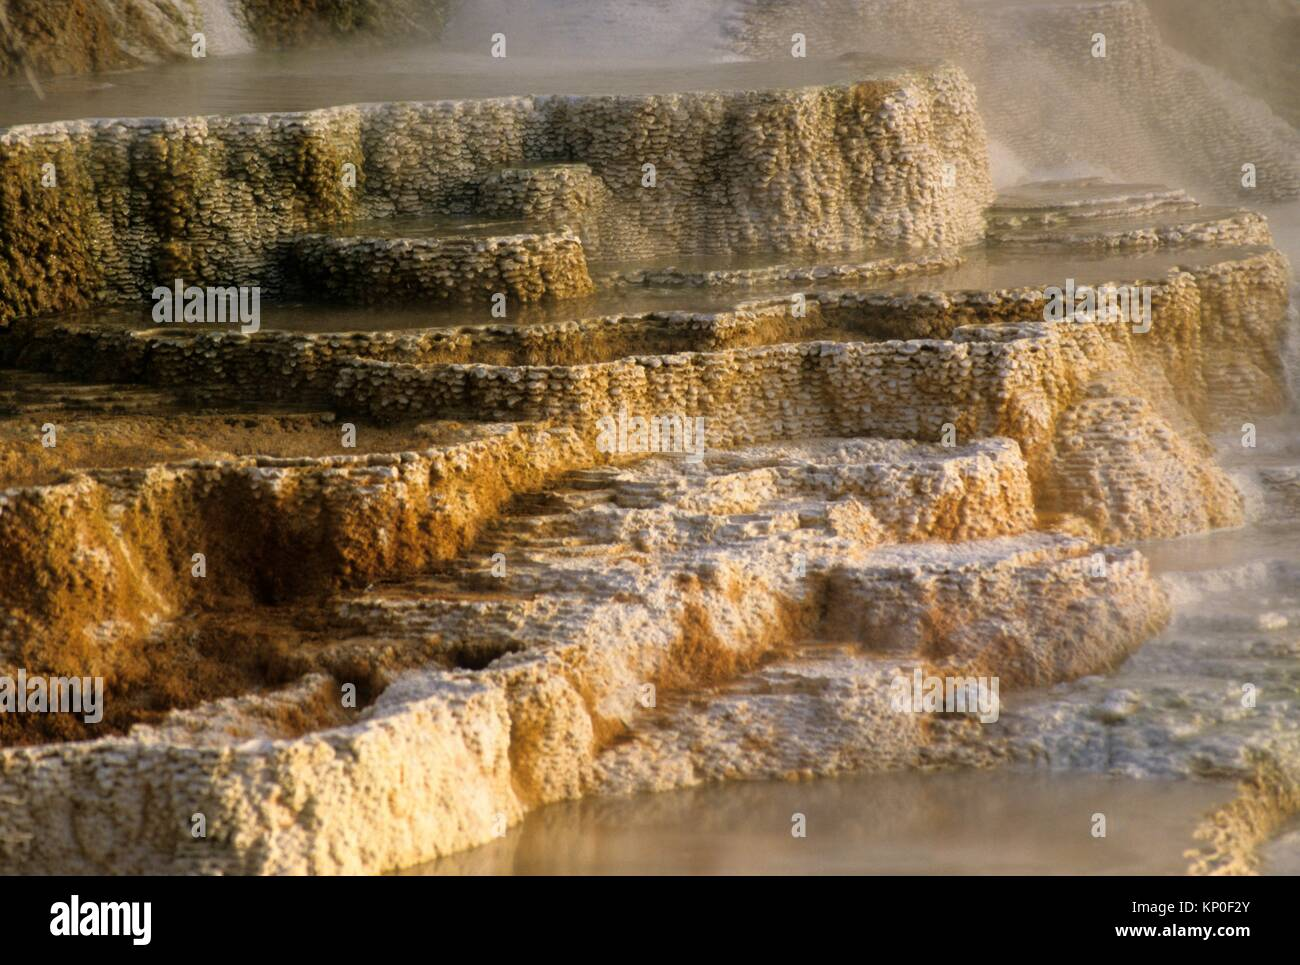 Kanarischen Frühling bei Mammoth Hot Springs, Yellowstone National Park, Wyoming. Stockbild